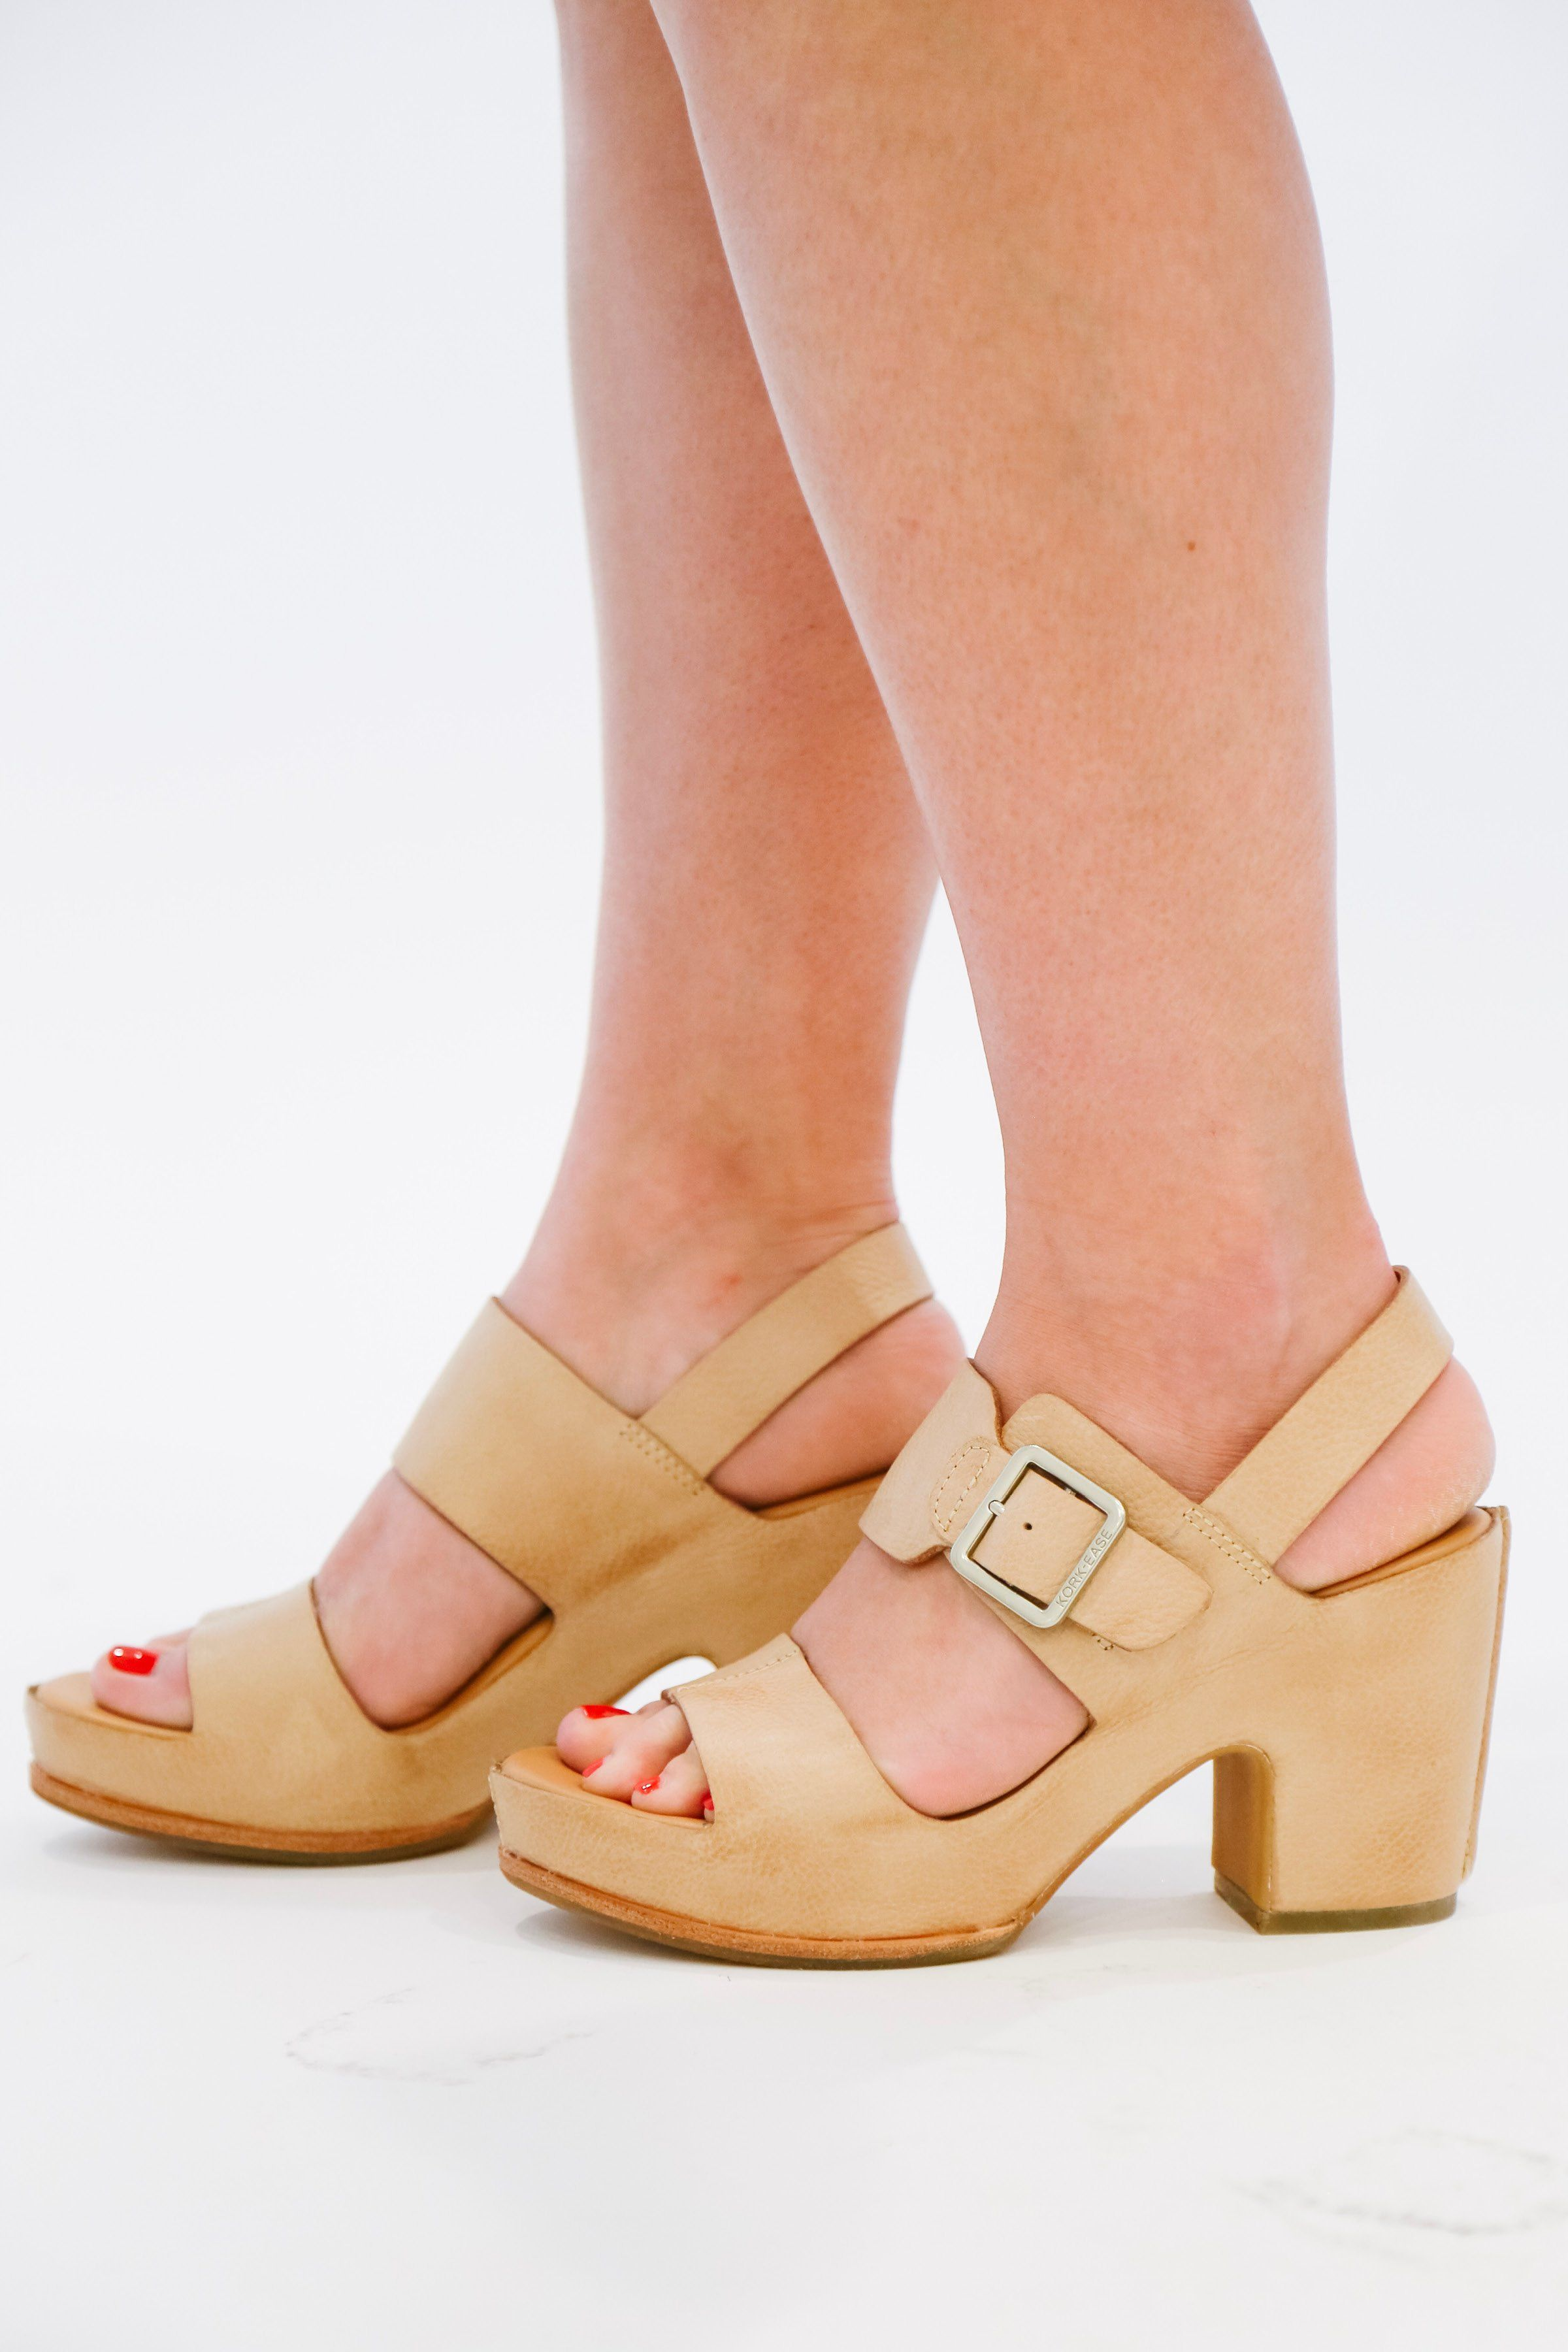 5c2534df93598 Kork-Ease: San Carlos Sandal in Tundra in 2019 | Shoe Inspiration ...